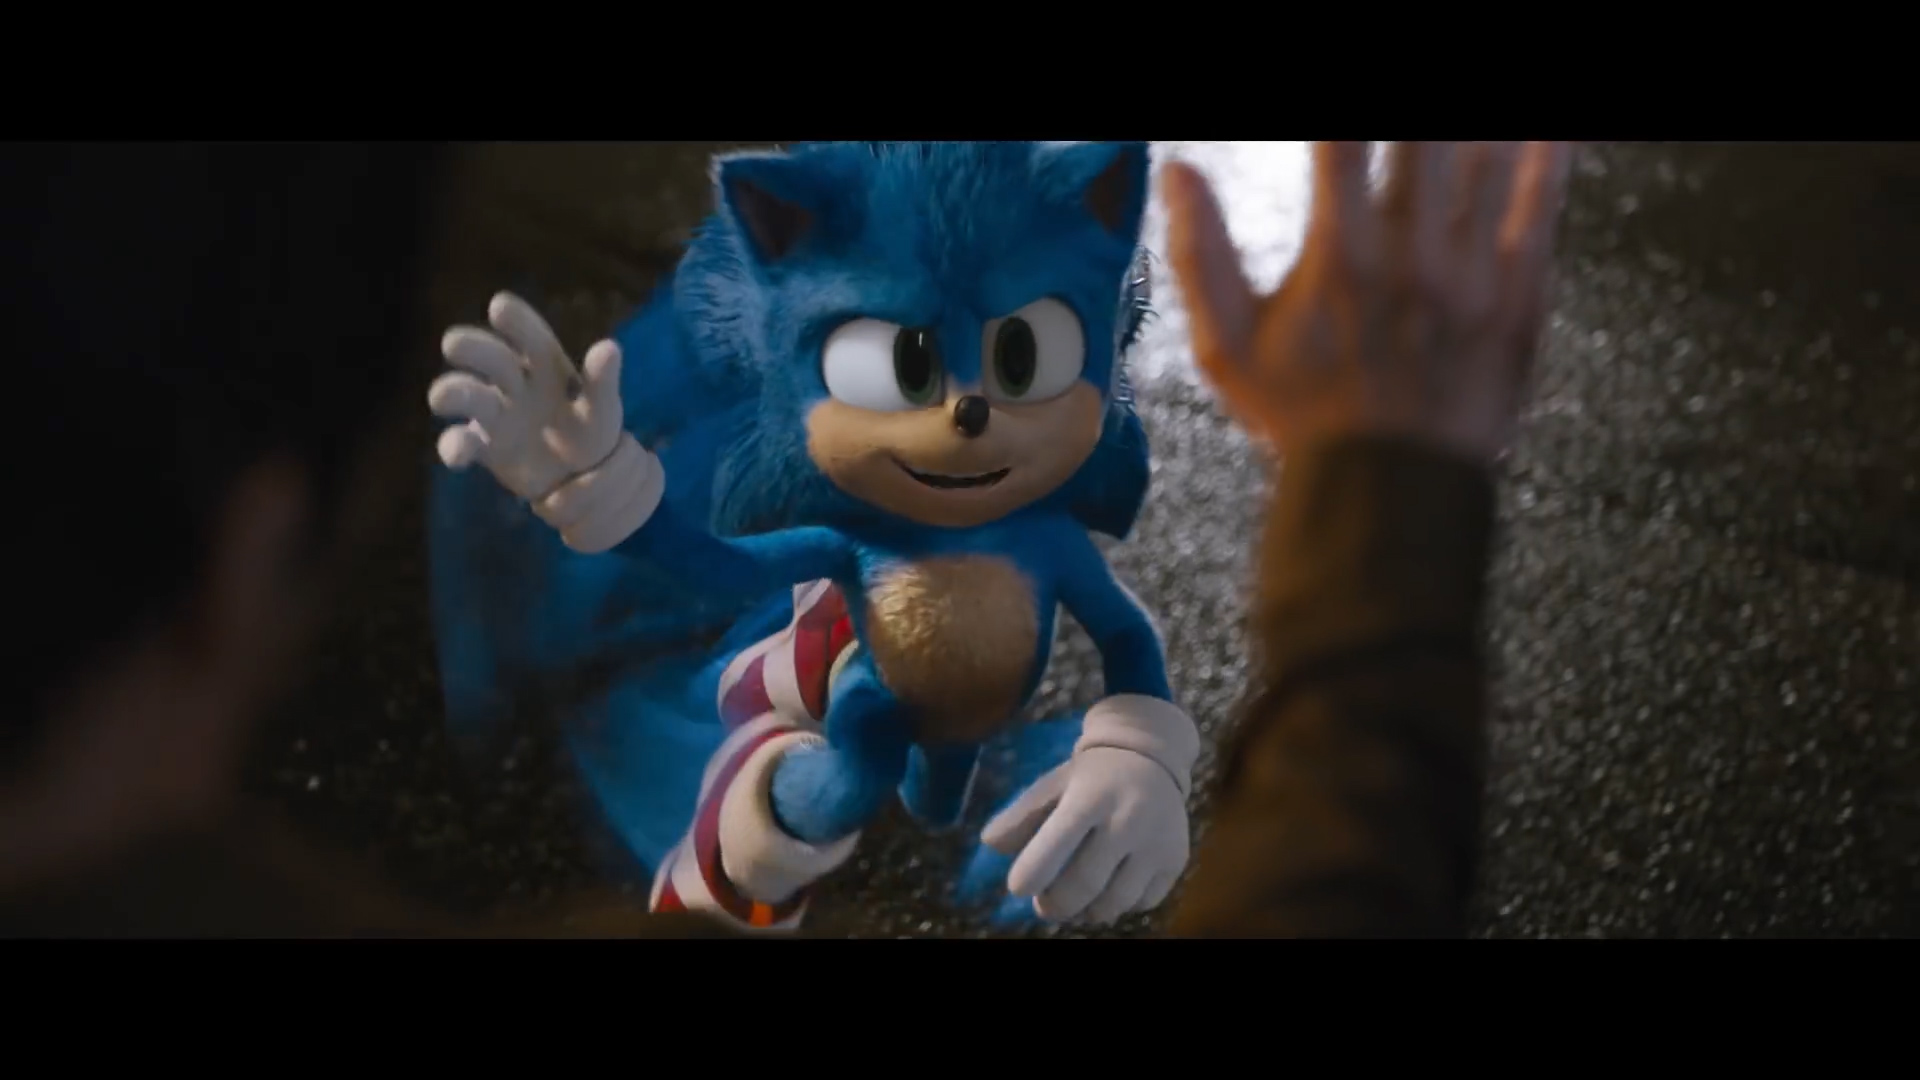 [3] Sonic The Hedgehog - New Official Trailer